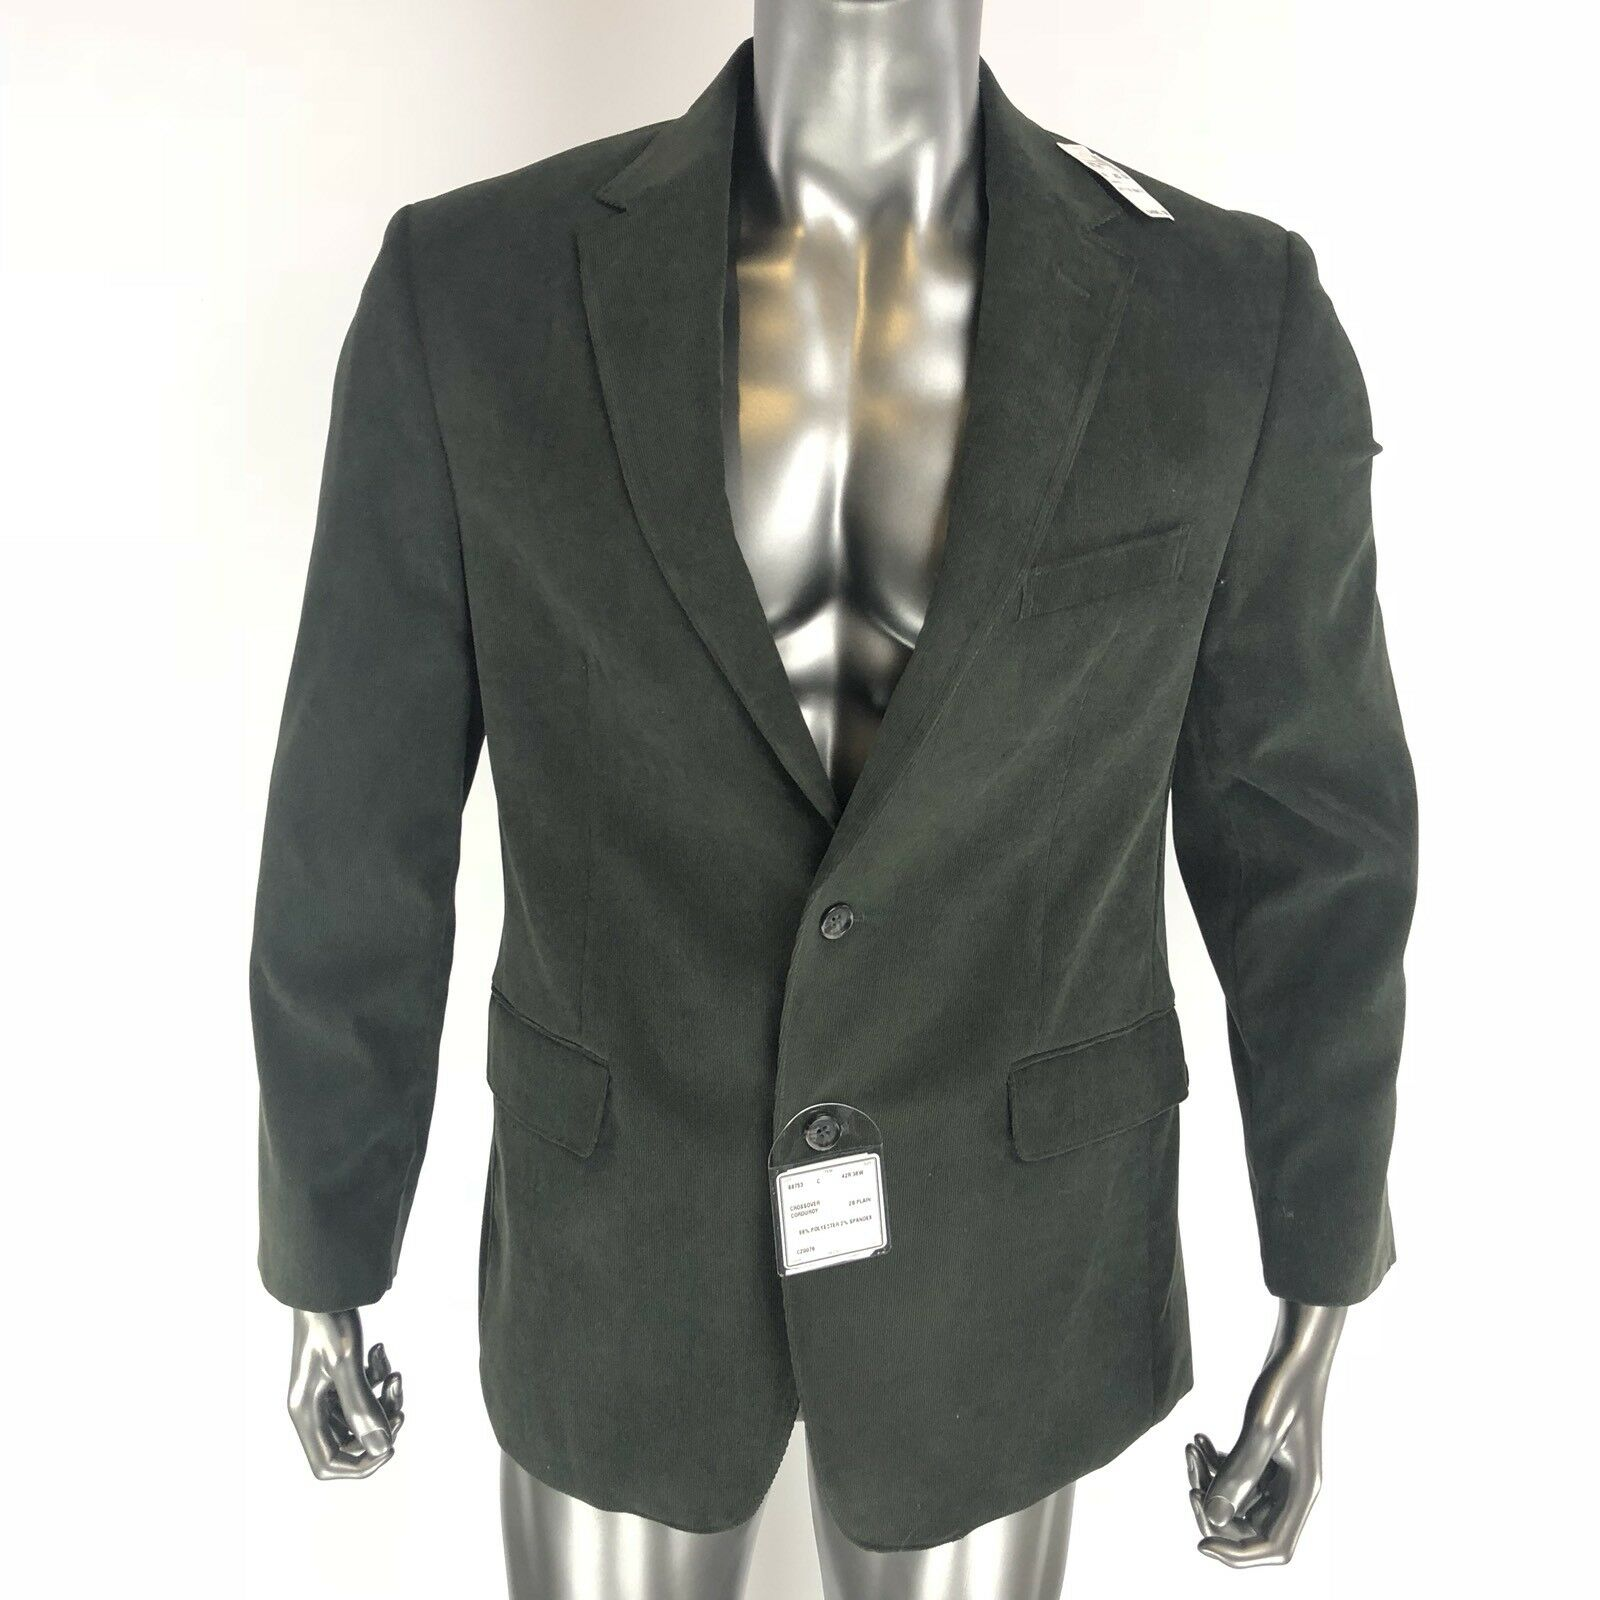 New Jos A Bank Collection Blazer Credver Corduroy Olive Size 42R 36W